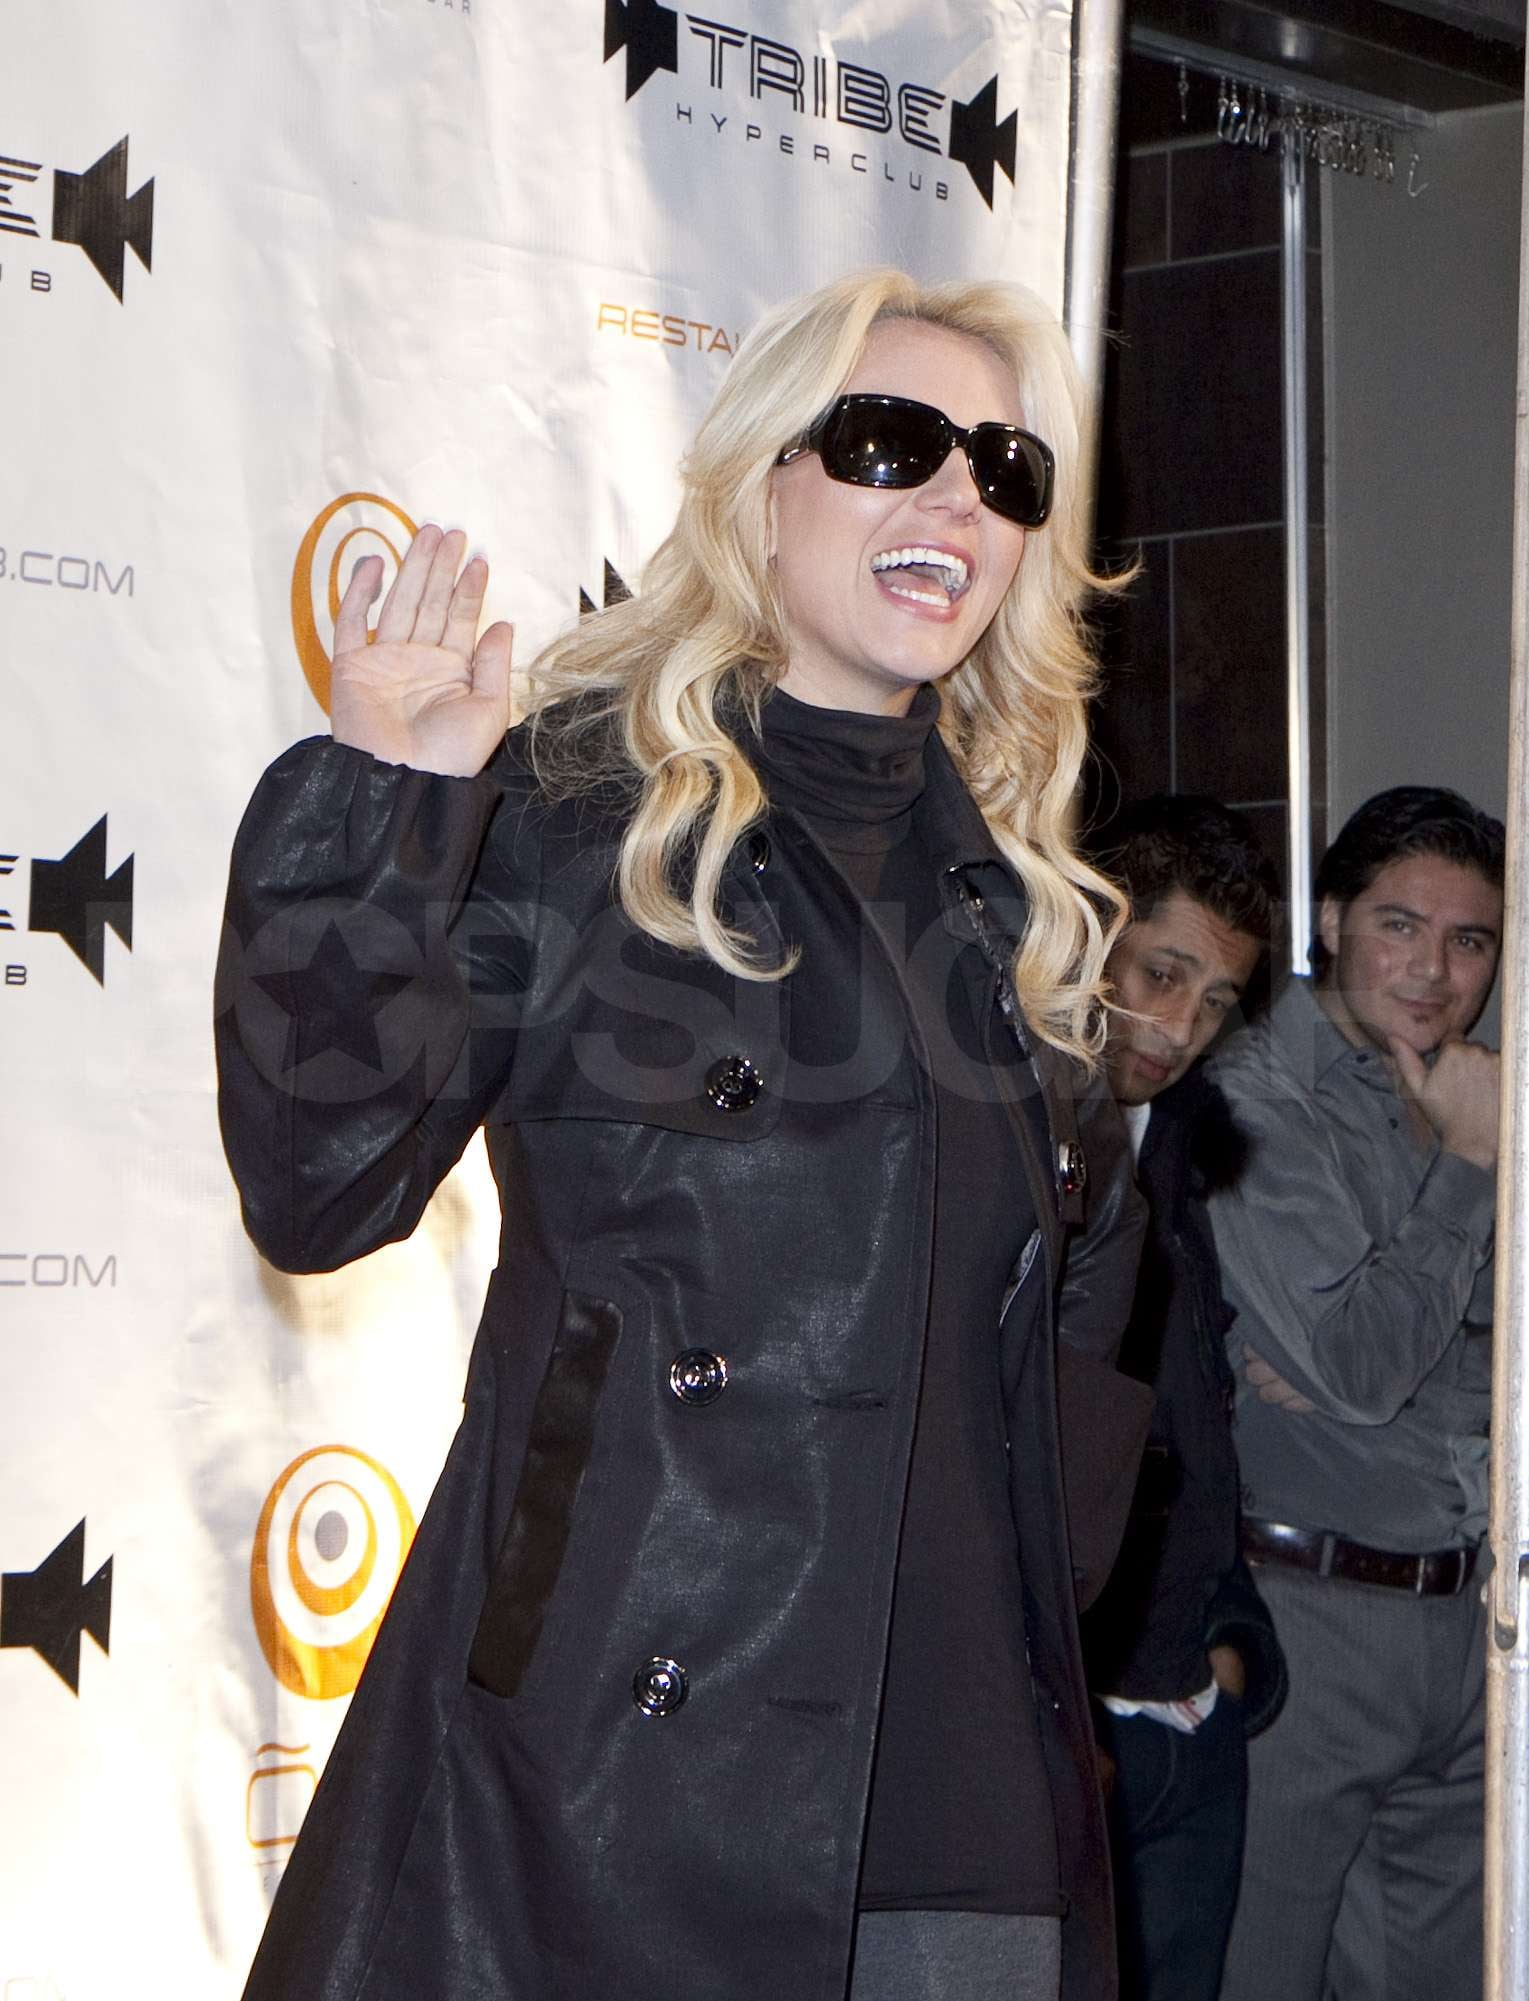 Photos-Britney-Spears-Concert-Afterparty-Montreal.JPG